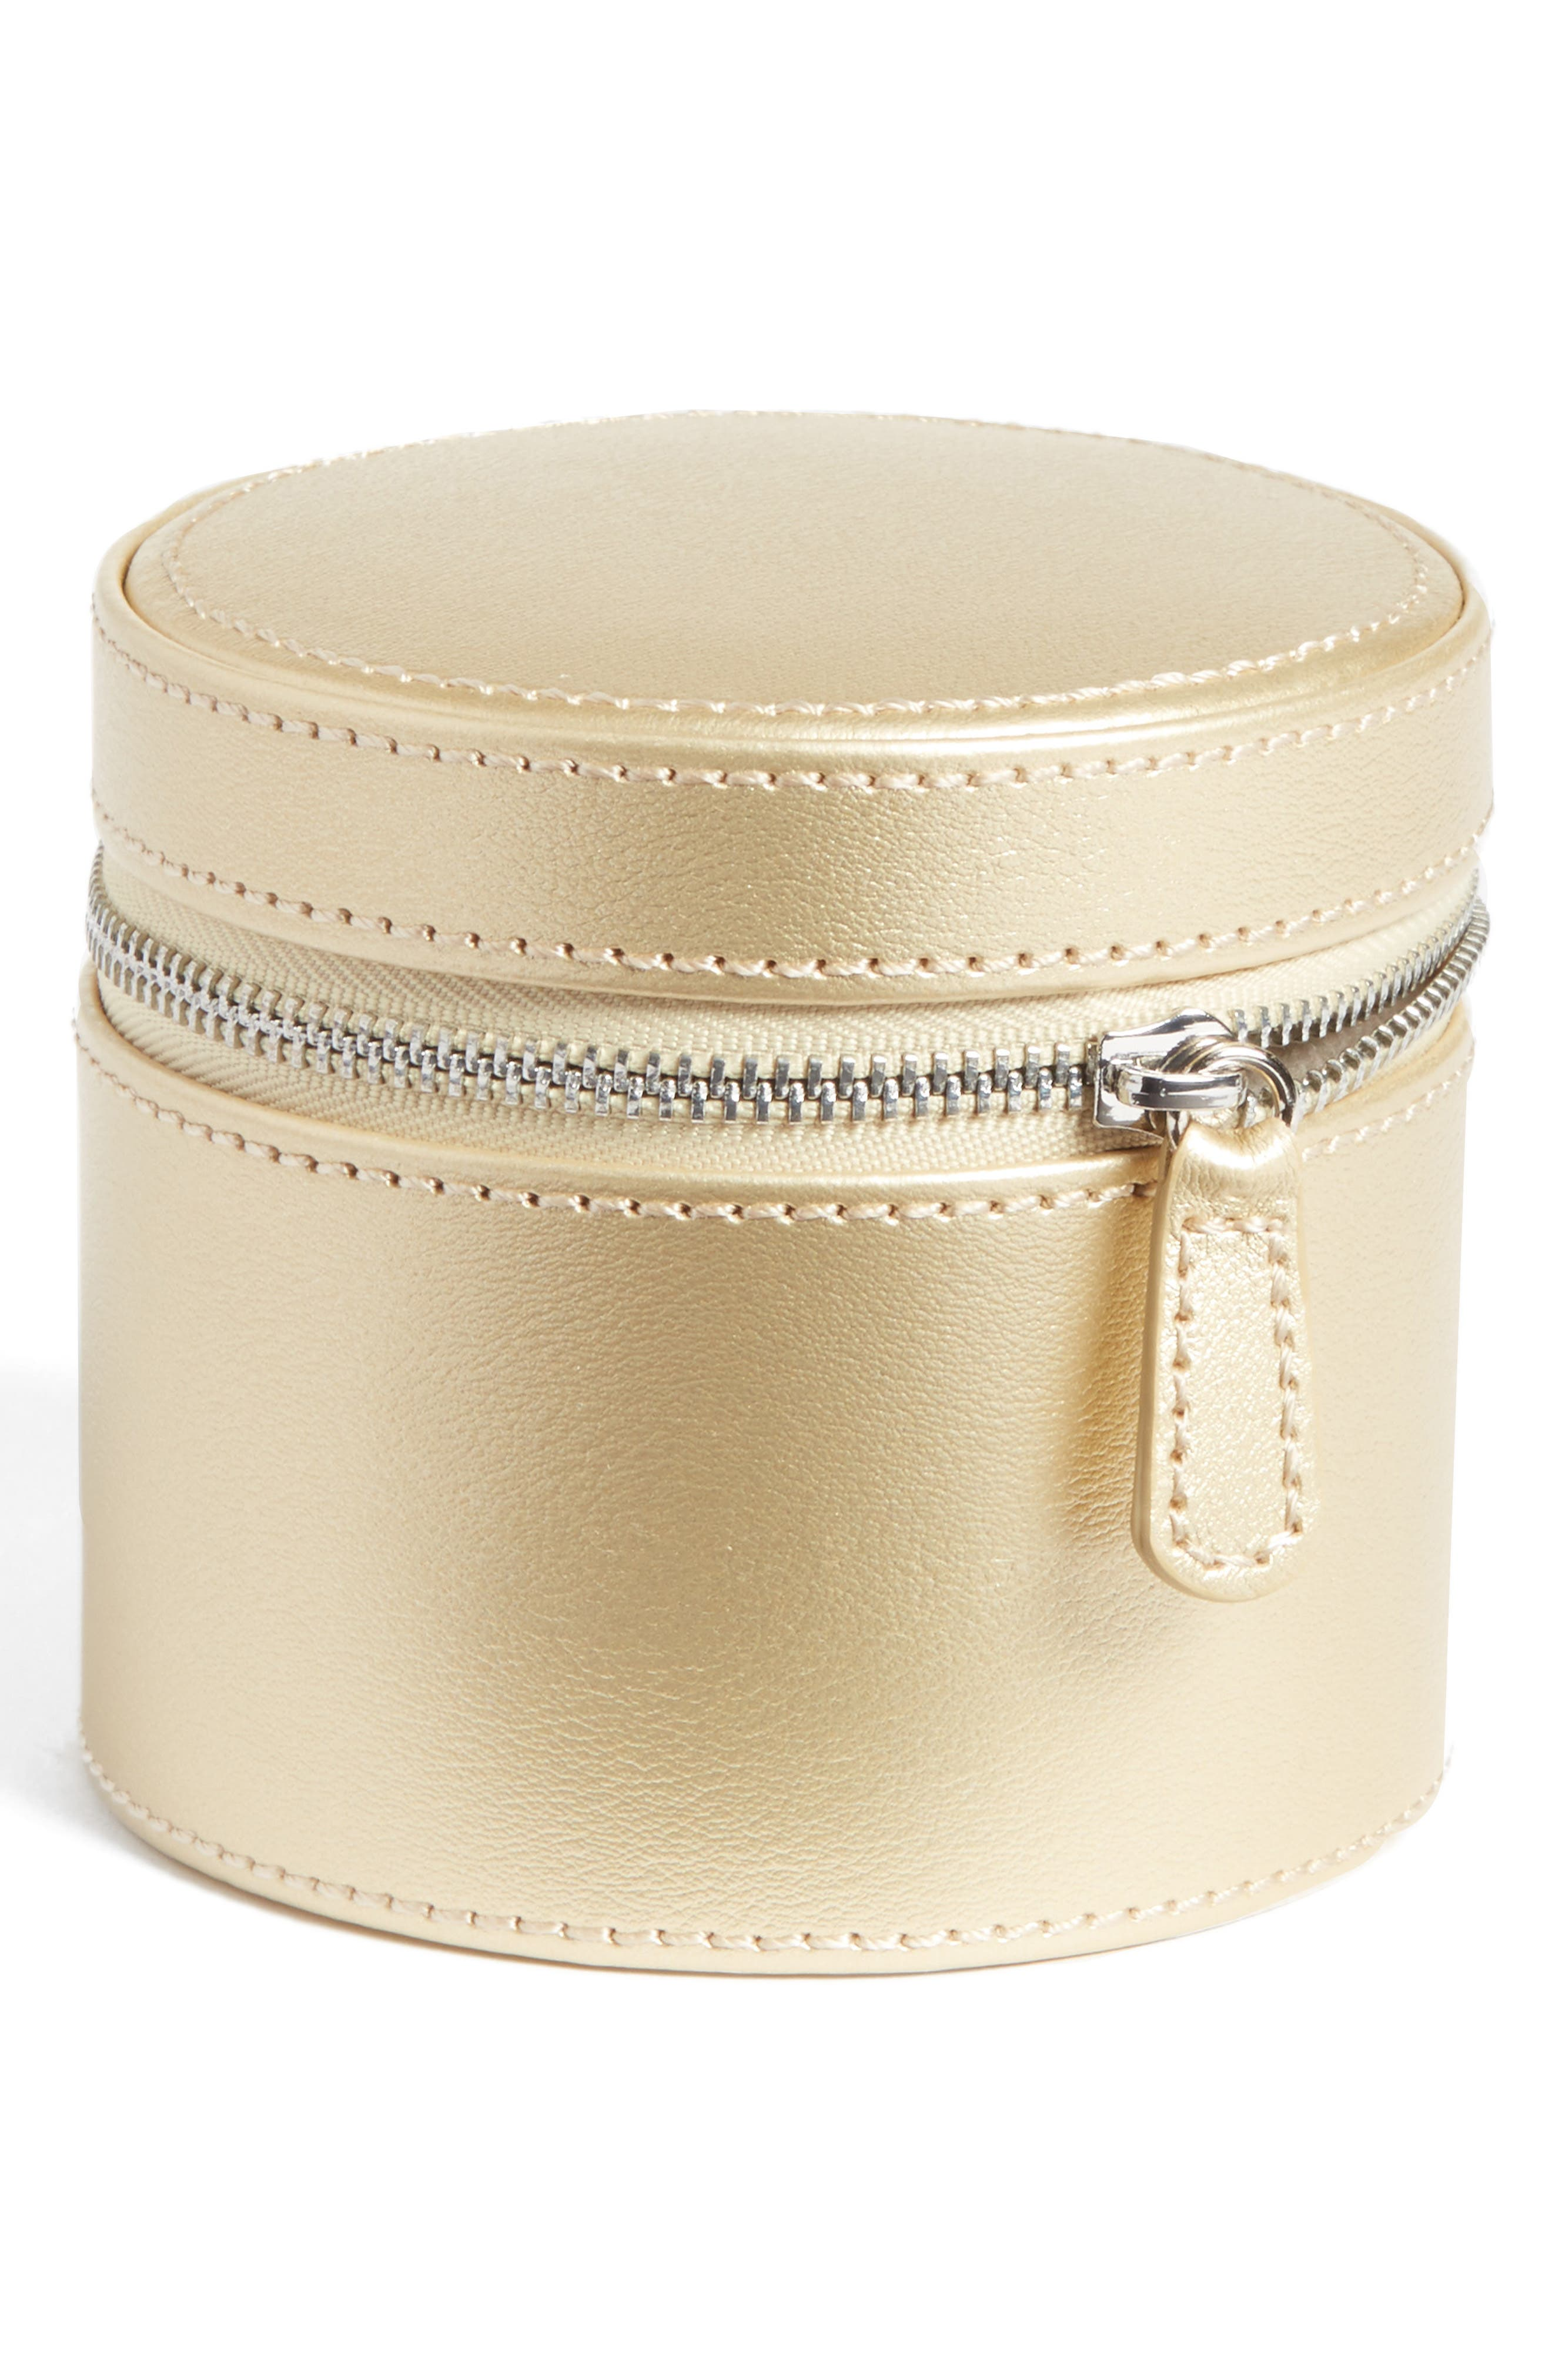 Small Round Zippered Jewelry Case,                             Main thumbnail 2, color,